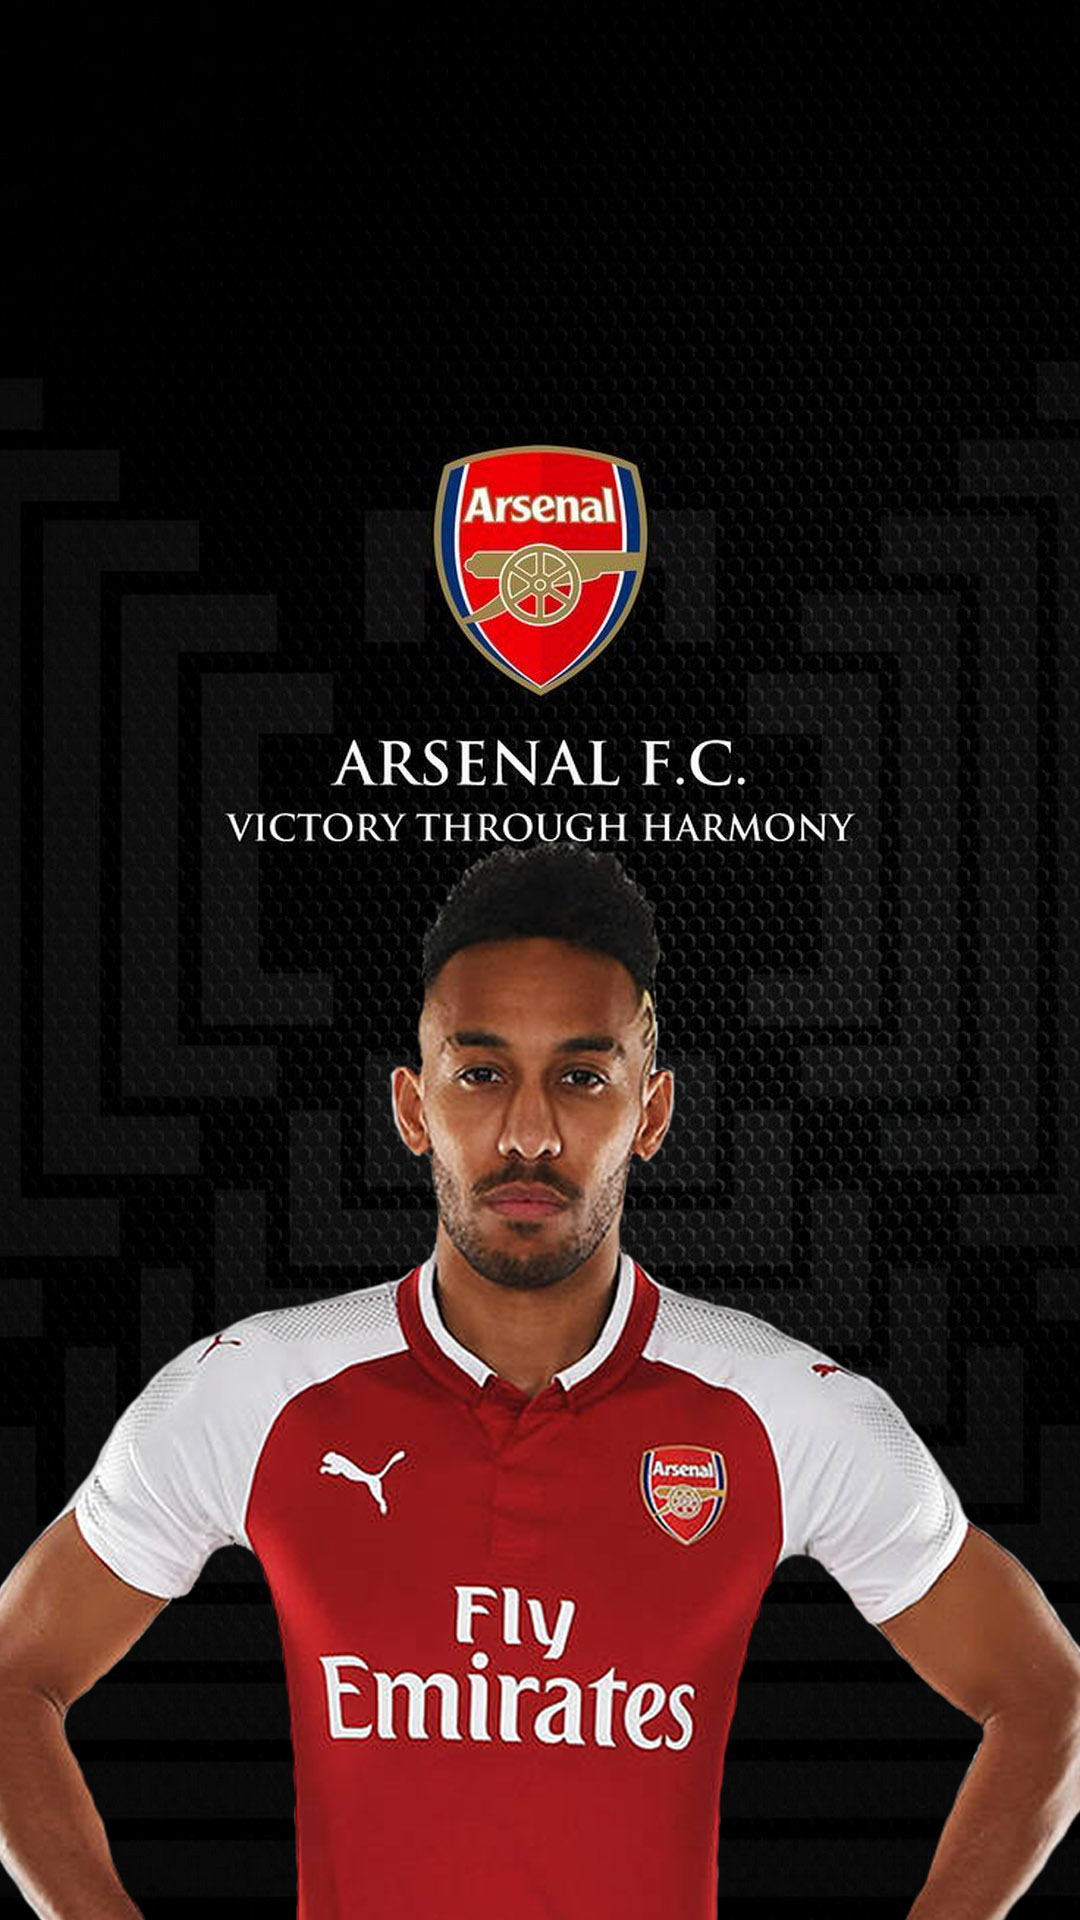 Pierre Emerick Aubameyang Arsenal Wallpaper Android   2020 Android 1080x1920